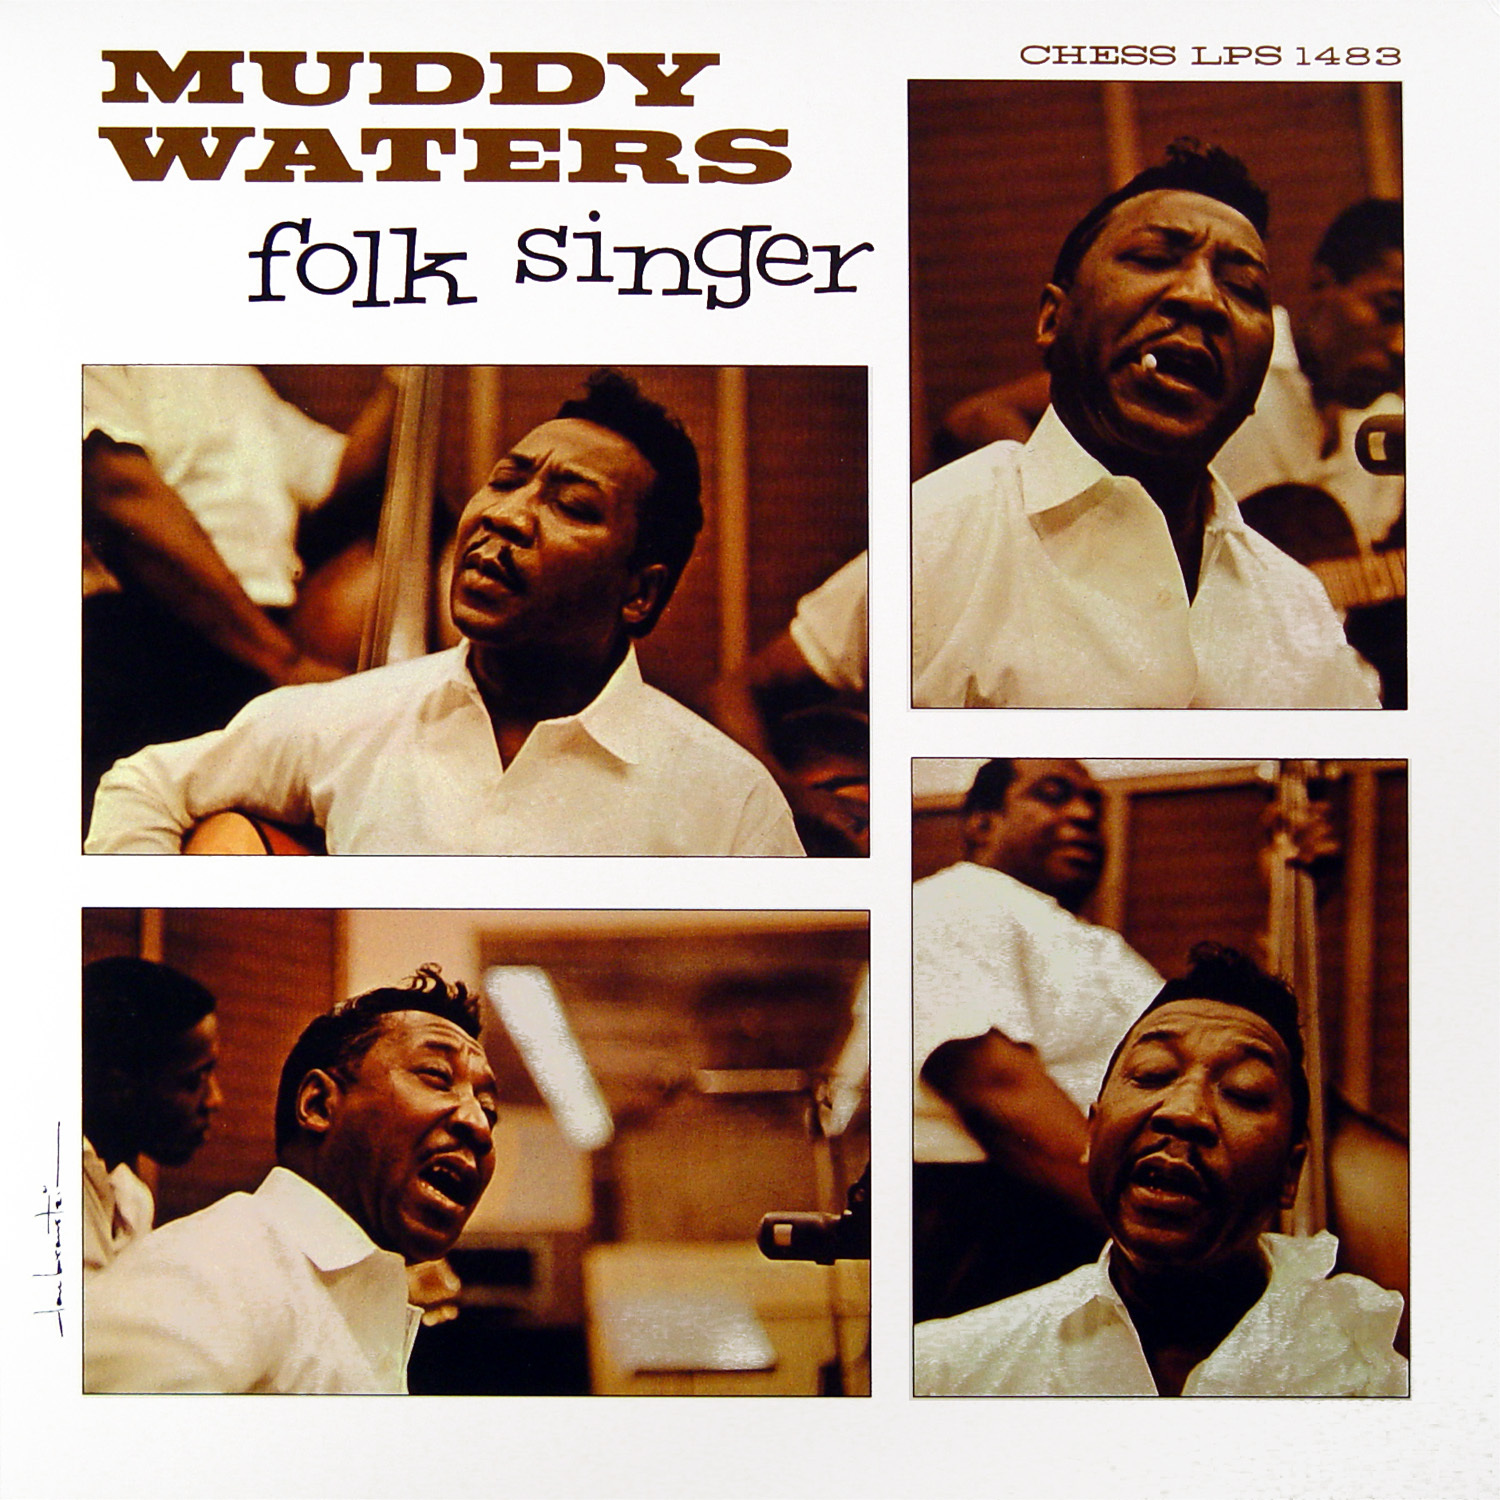 Cover art to Muddy Waters' Folk Singer LP.